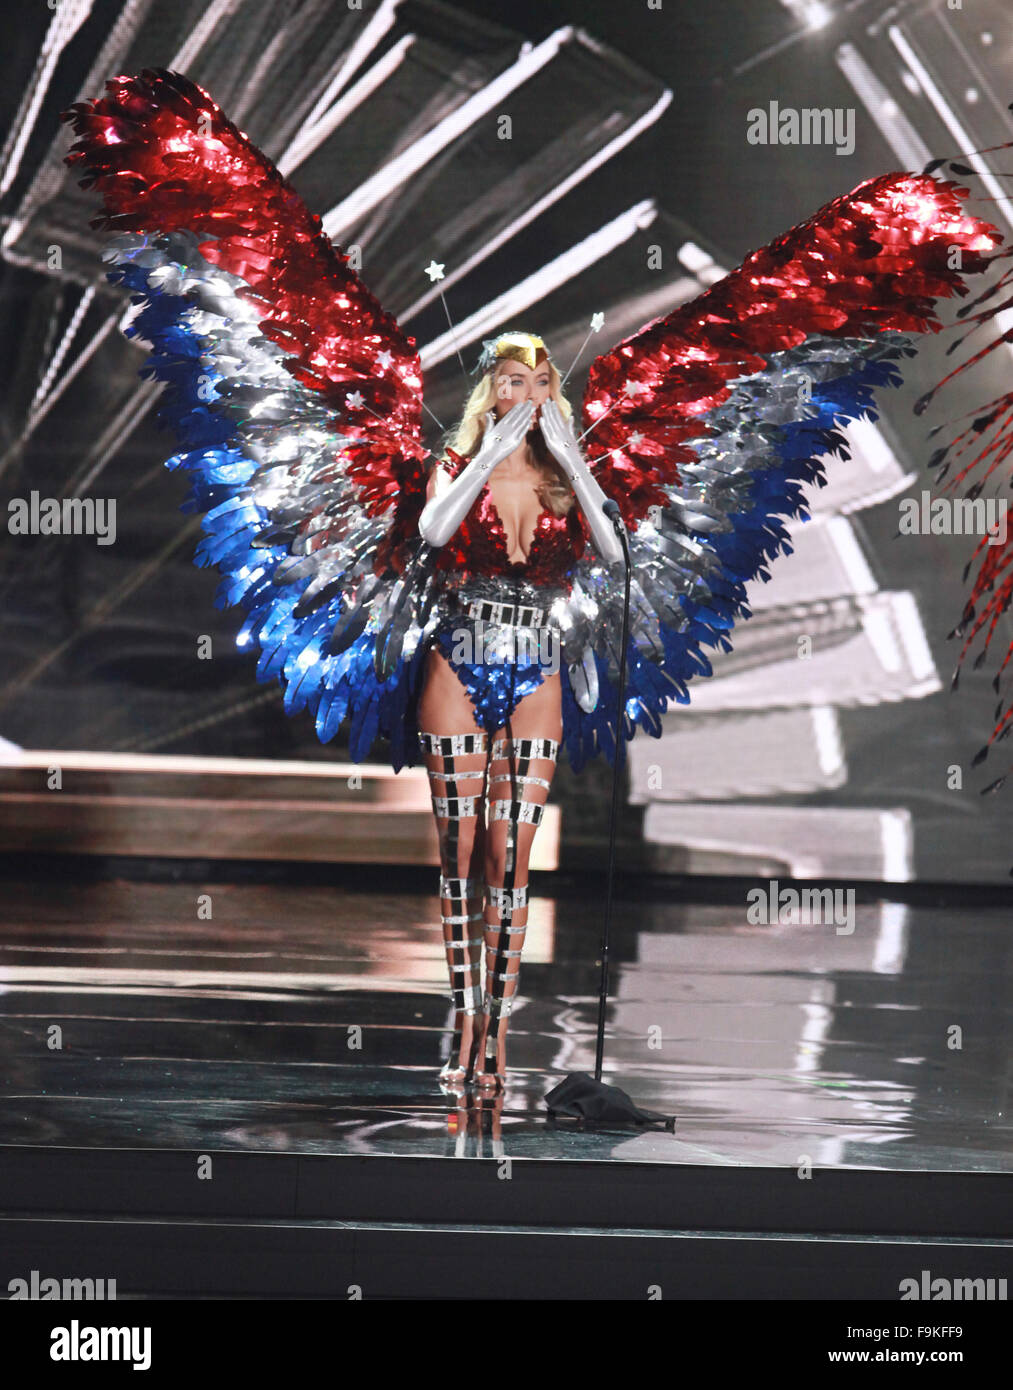 Las Vegas, Nevada, USA. 16th Dec, 2015. Miss USA Olivia Jordan participates in the National Costume Show during - Stock Image